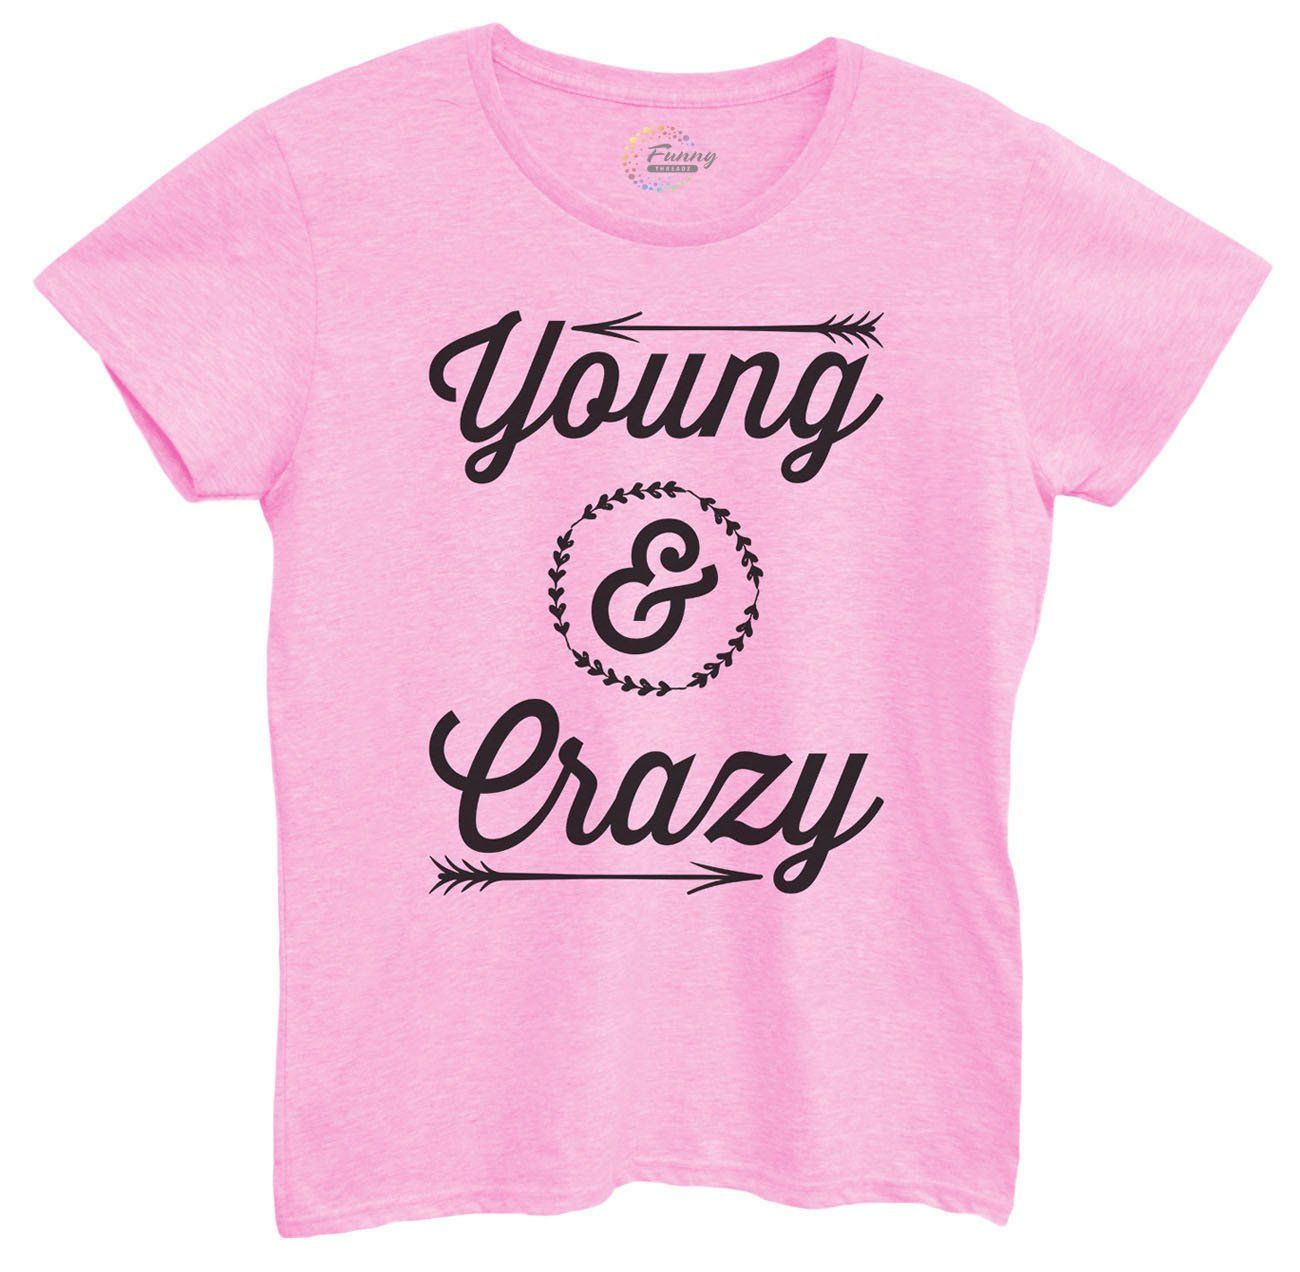 Womens Young & Crazy Tshirt